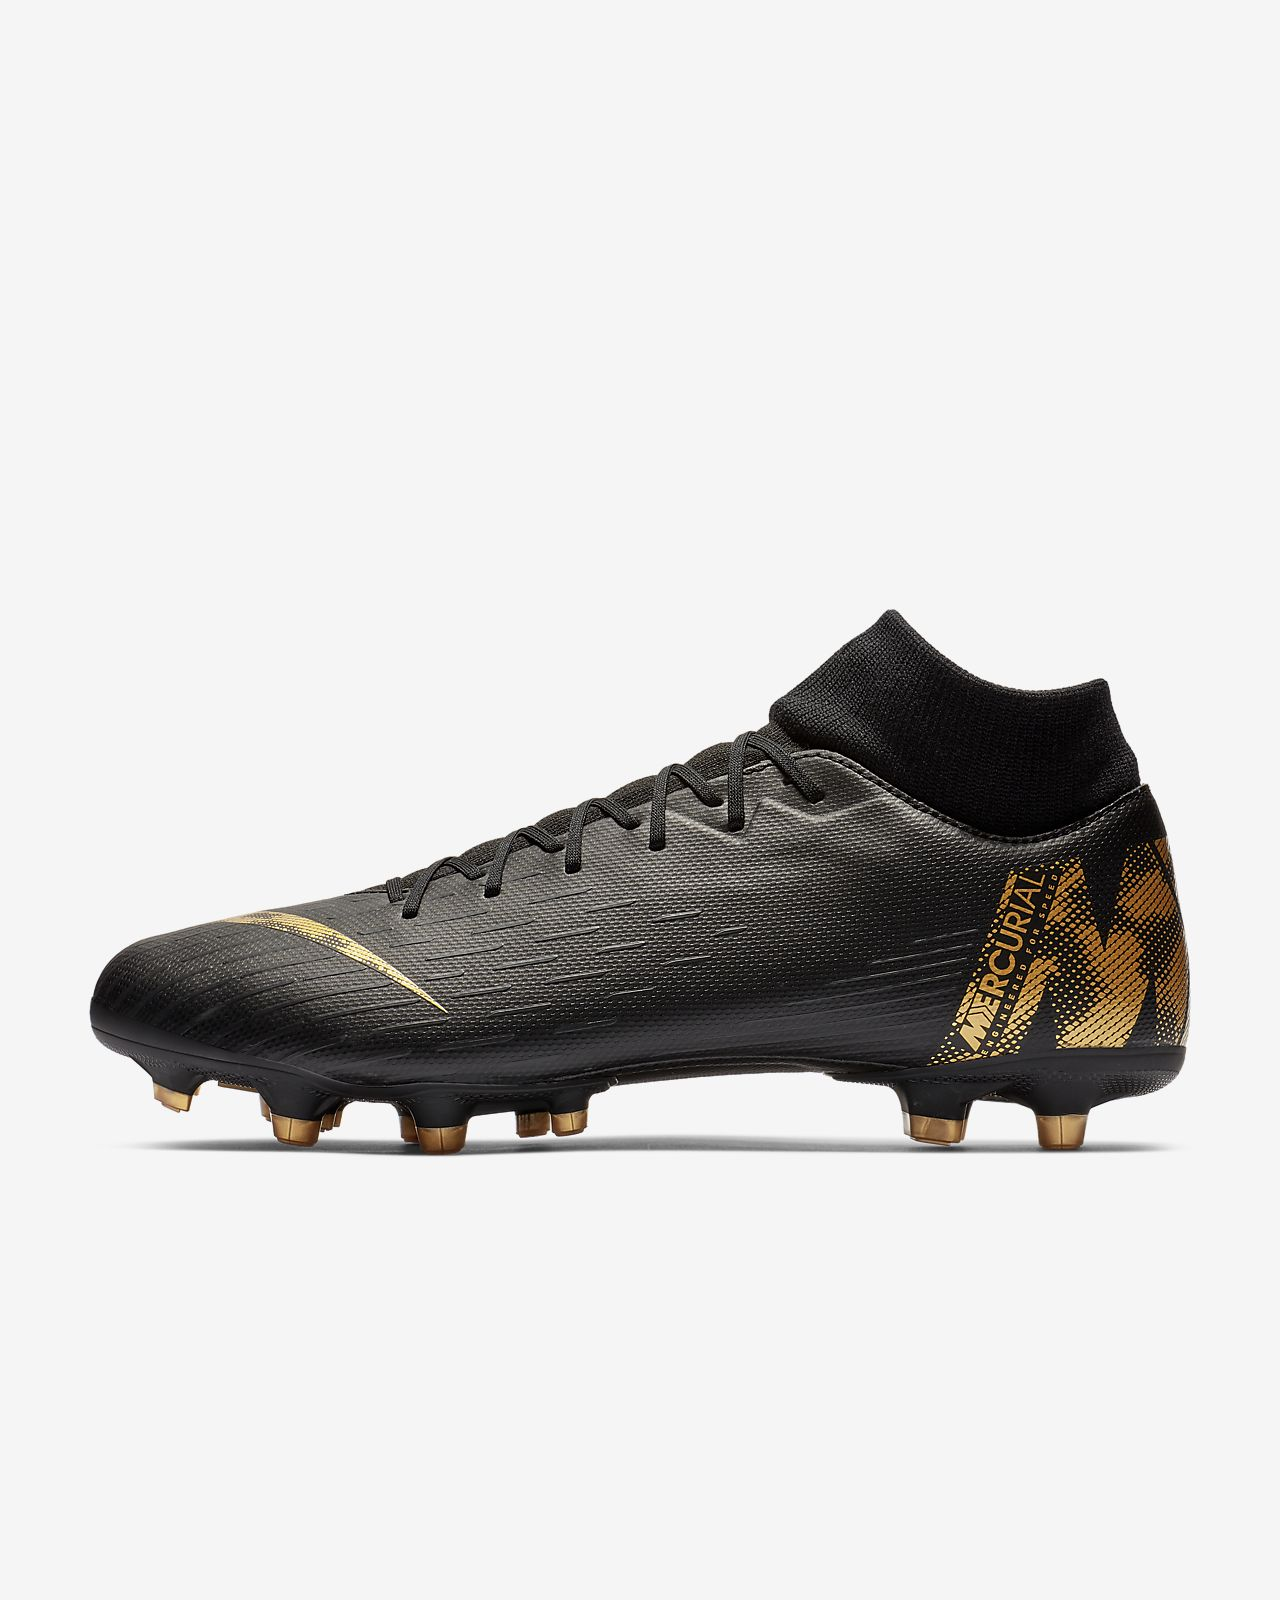 472311f4e8d18 Nike Mercurial Superfly 6 Academy MG Multi-Ground Soccer Cleat. Nike.com